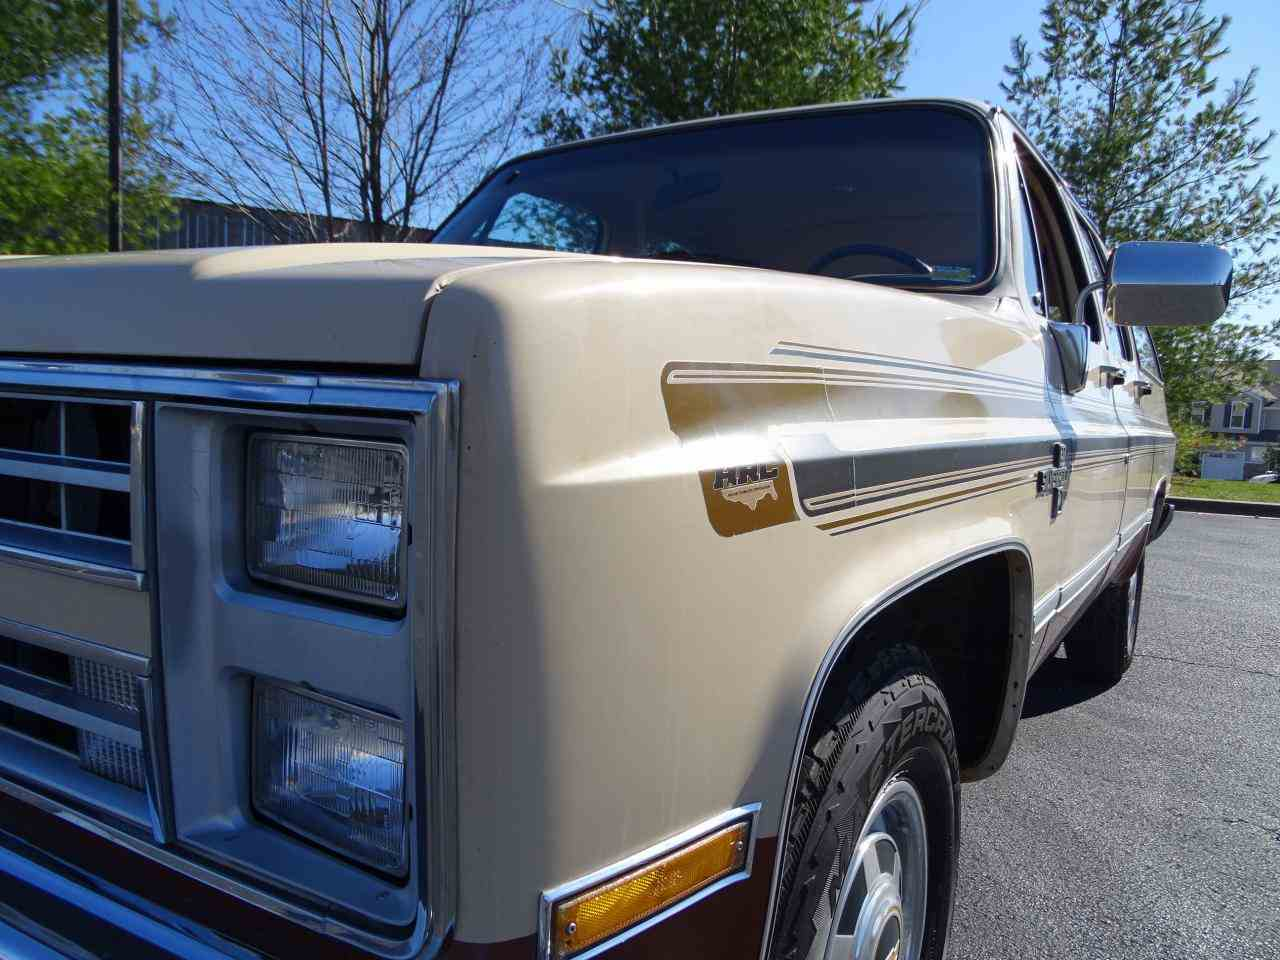 Large Picture of 1986 C/K 20 located in Illinois - $10,995.00 Offered by Gateway Classic Cars - St. Louis - MZE8